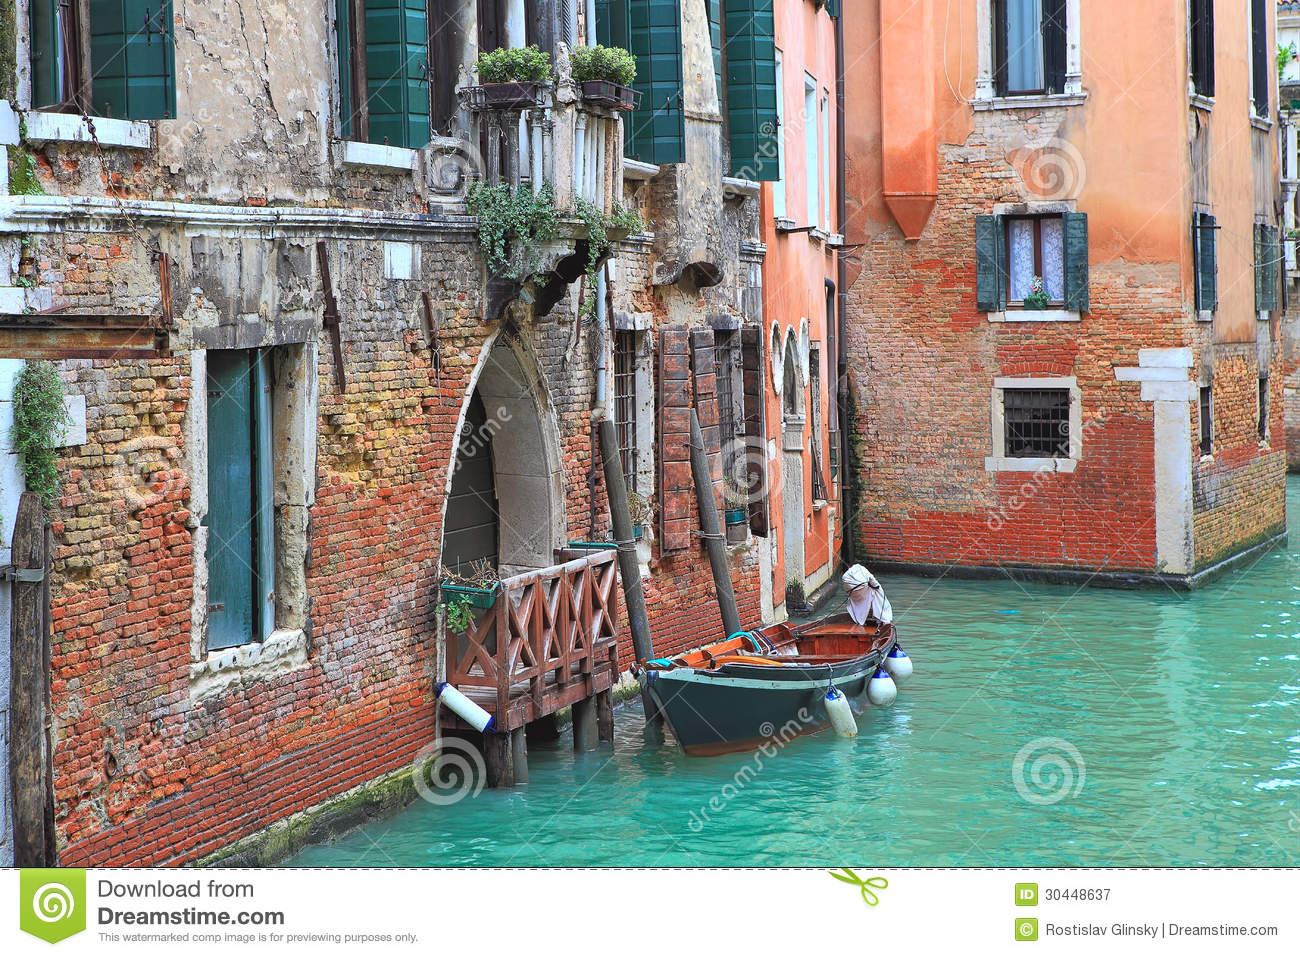 Boat And Old Brick House In Venice, Italy. Stock Image - Image of italy, site: 30448637